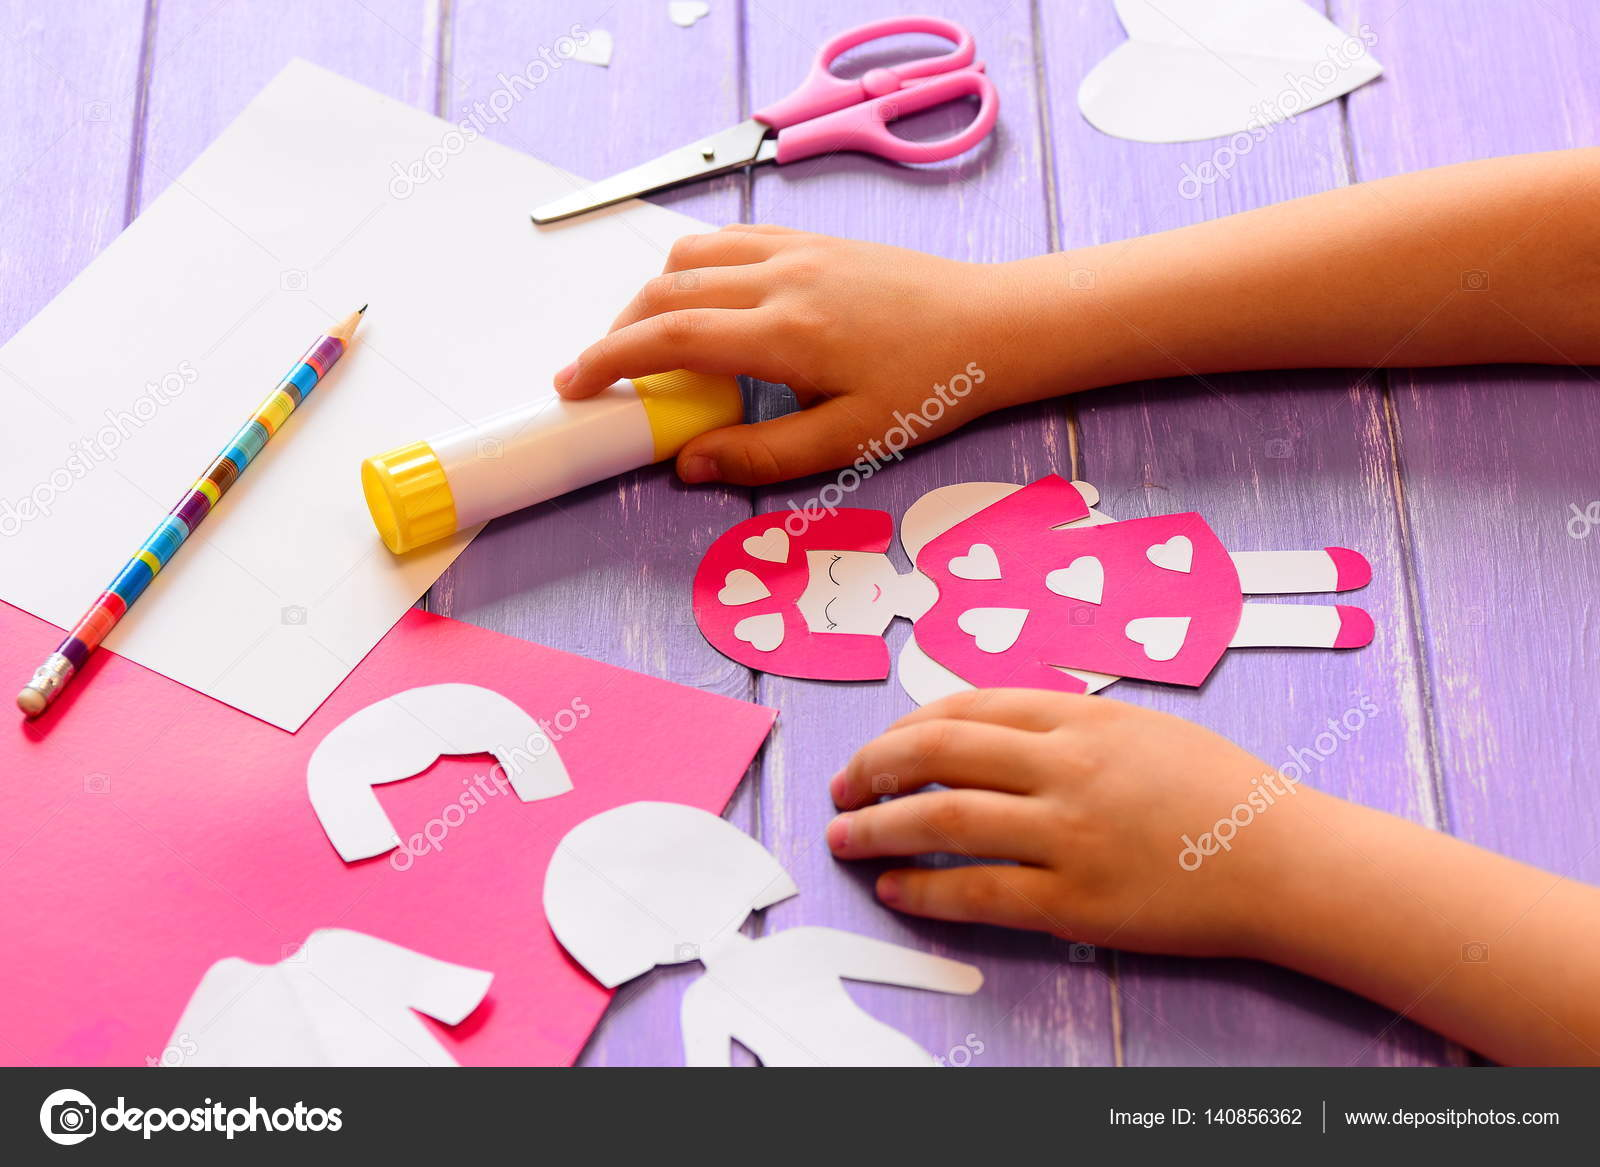 Small Child Made An Angel Doll Of Cardboard Childrens Hands On A Wooden Table